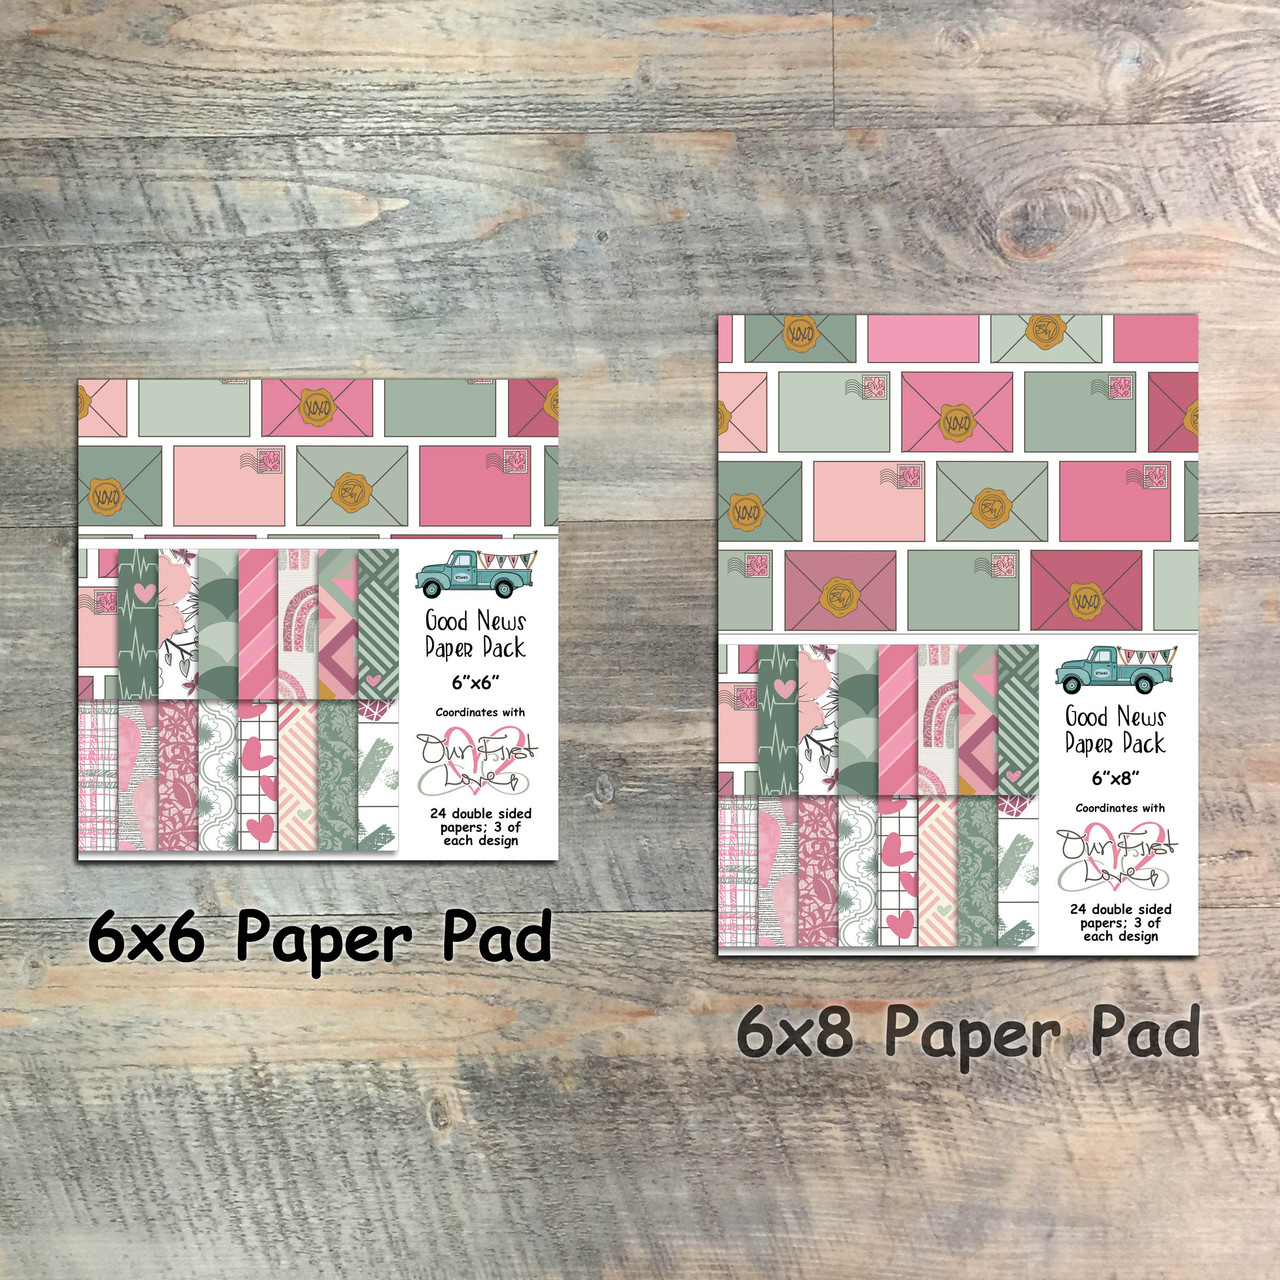 Our First Love - Good News Paper Collection - 24 Double Sided 6x6 or 6x8 Papers